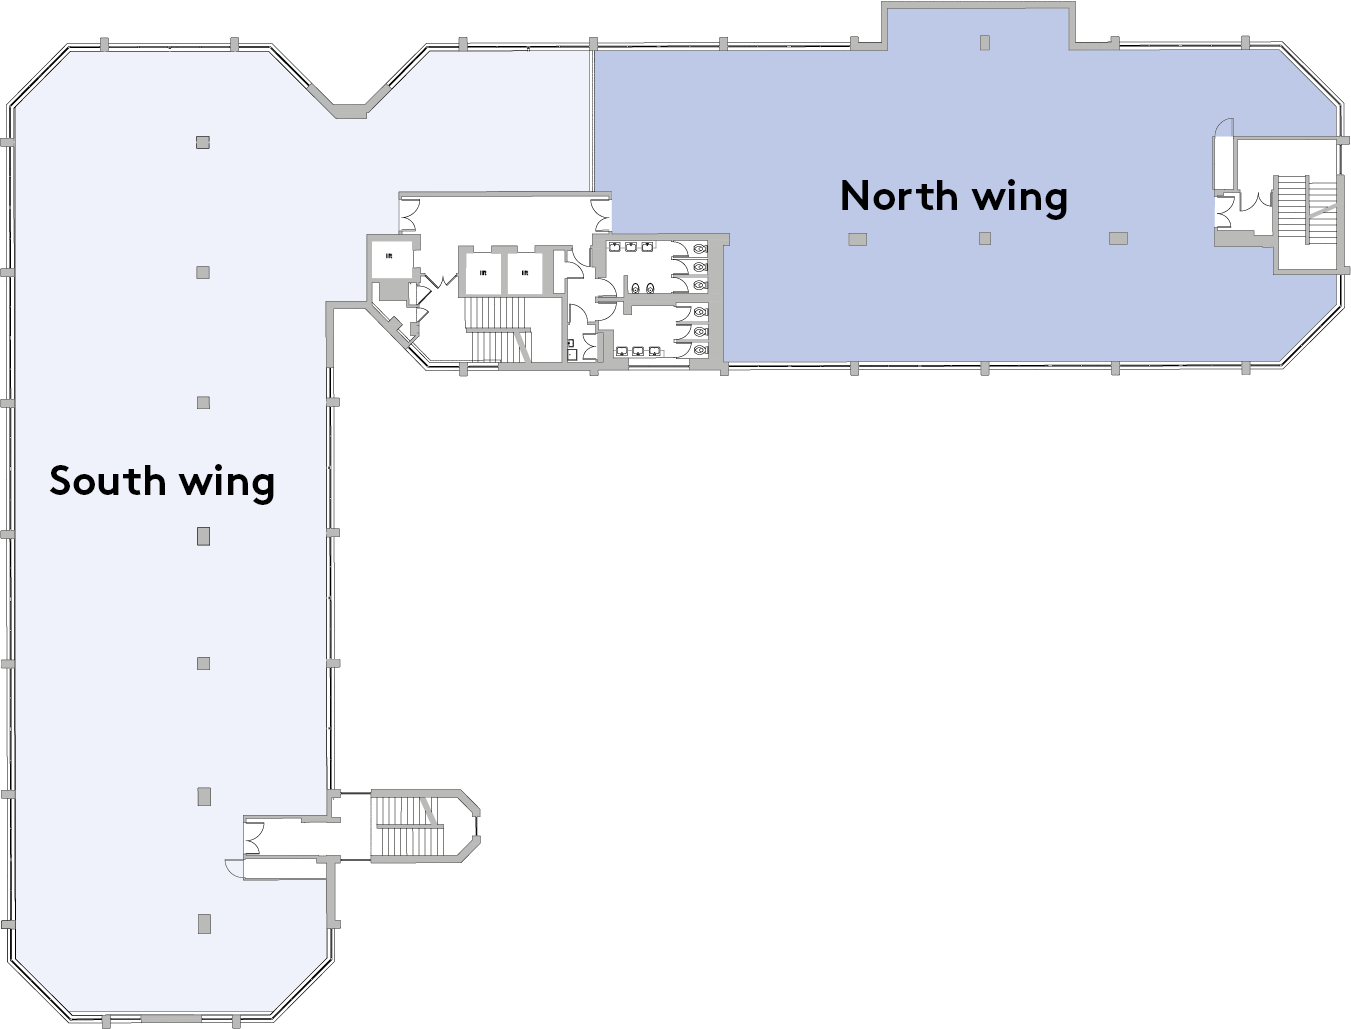 St Andrew's House Woking ground floor plan